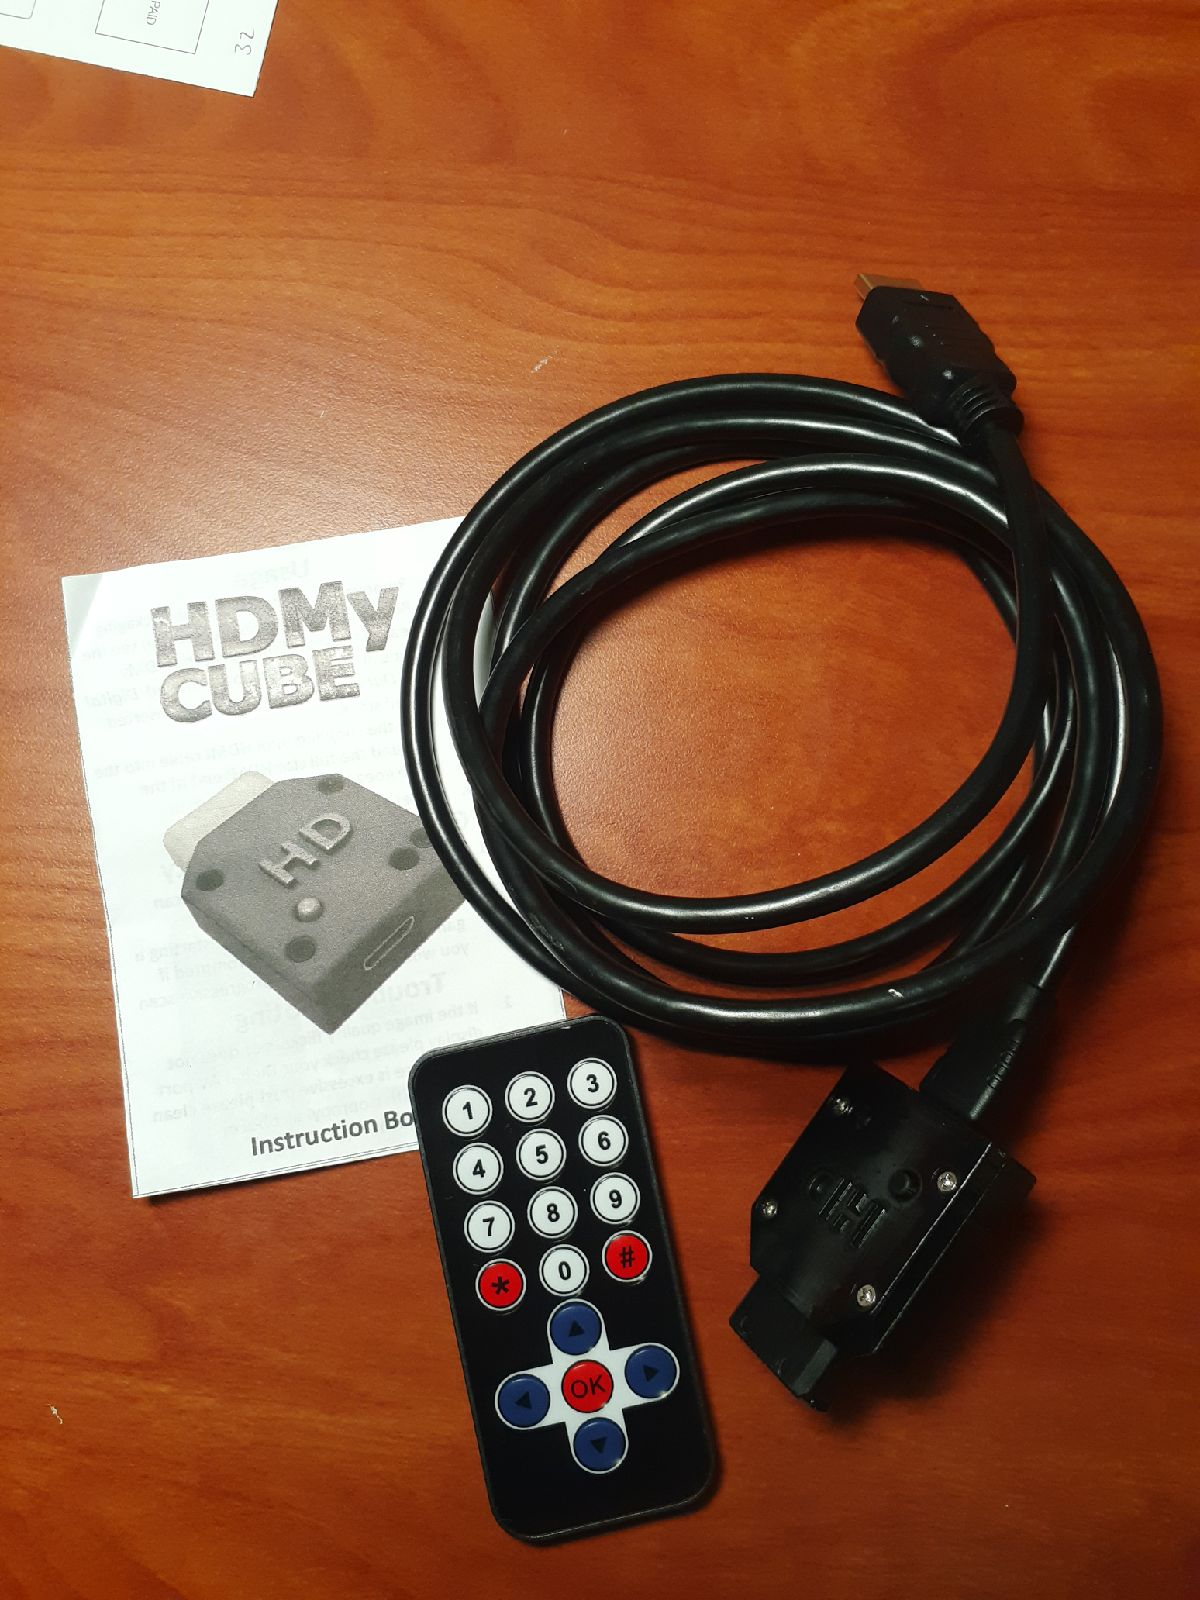 HDMy Cube cable, adapter, and controller